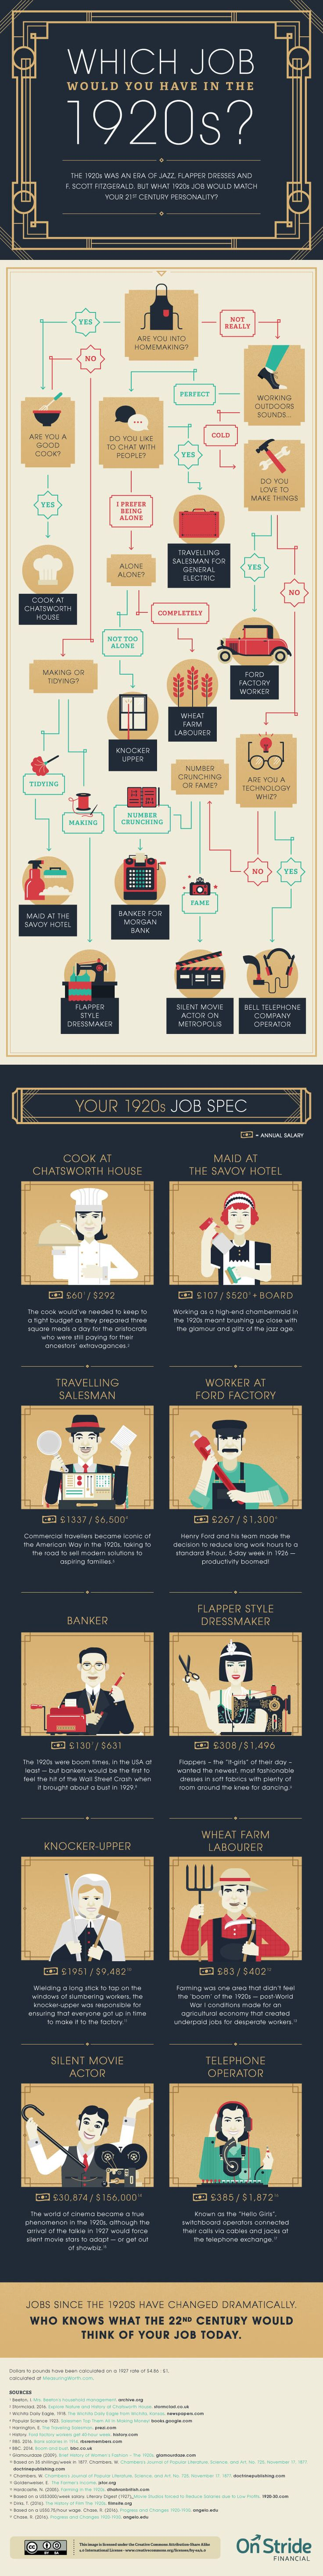 Which Job Would You Have in the 1920s? #Infographic #Career #Job